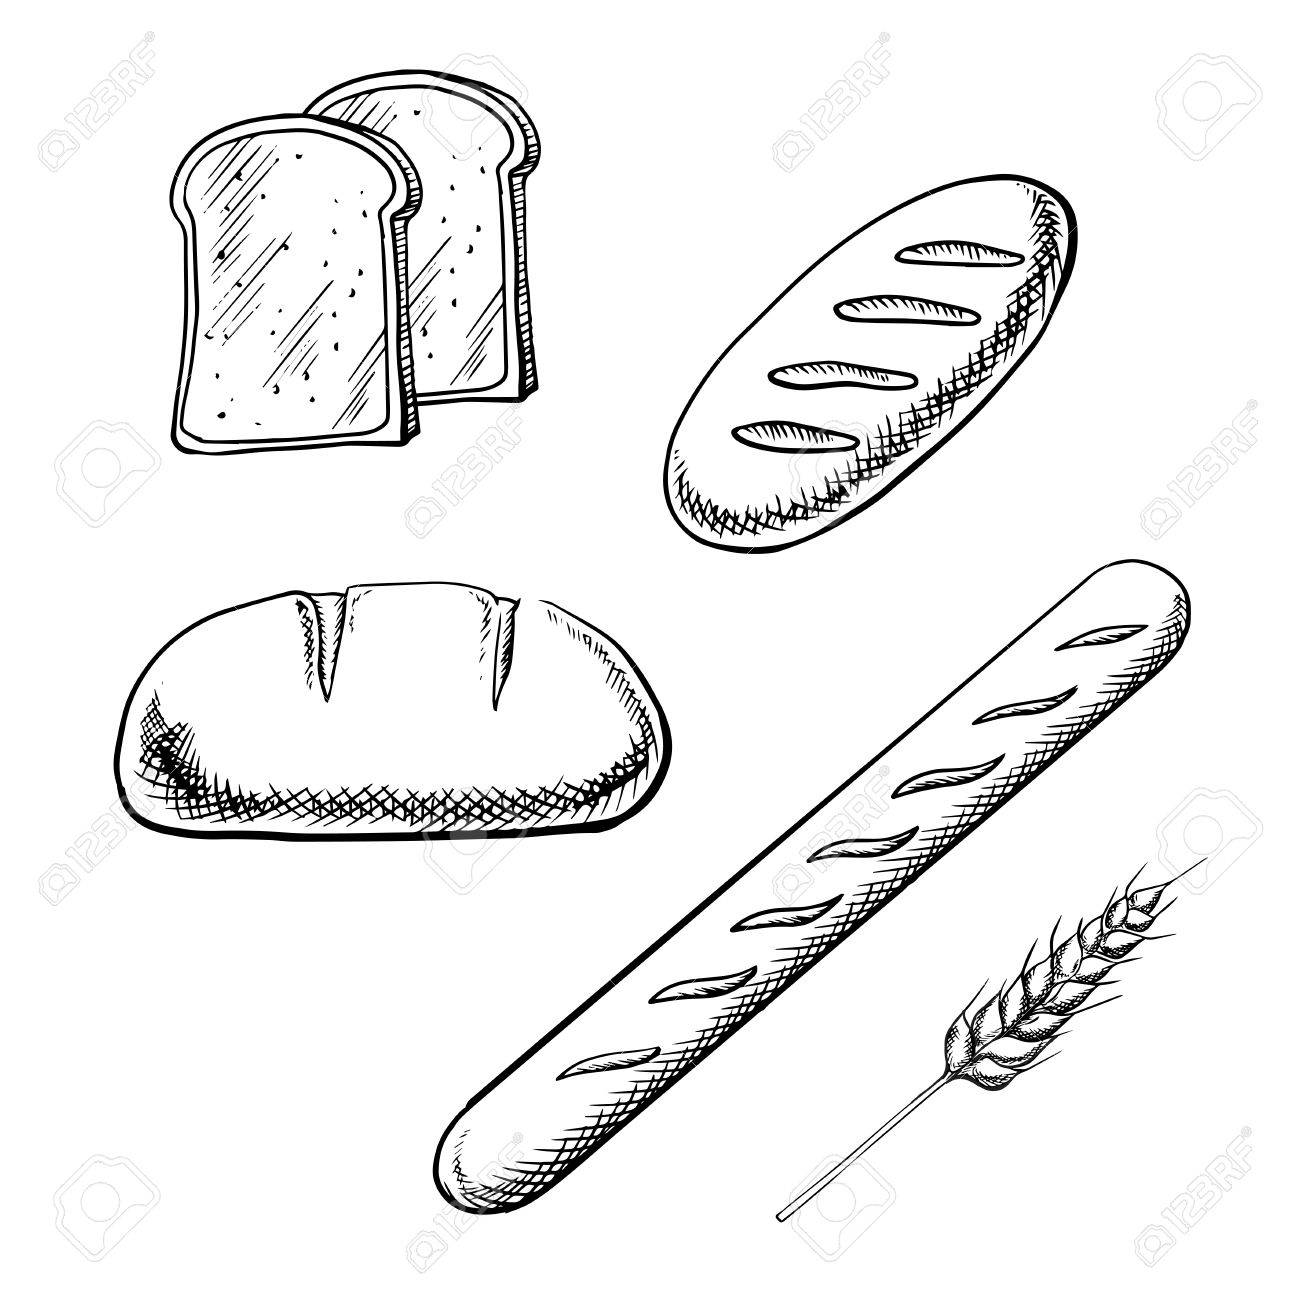 1300x1300 Toast Bread Slices, Long Loaves And French Baguette With Wheat